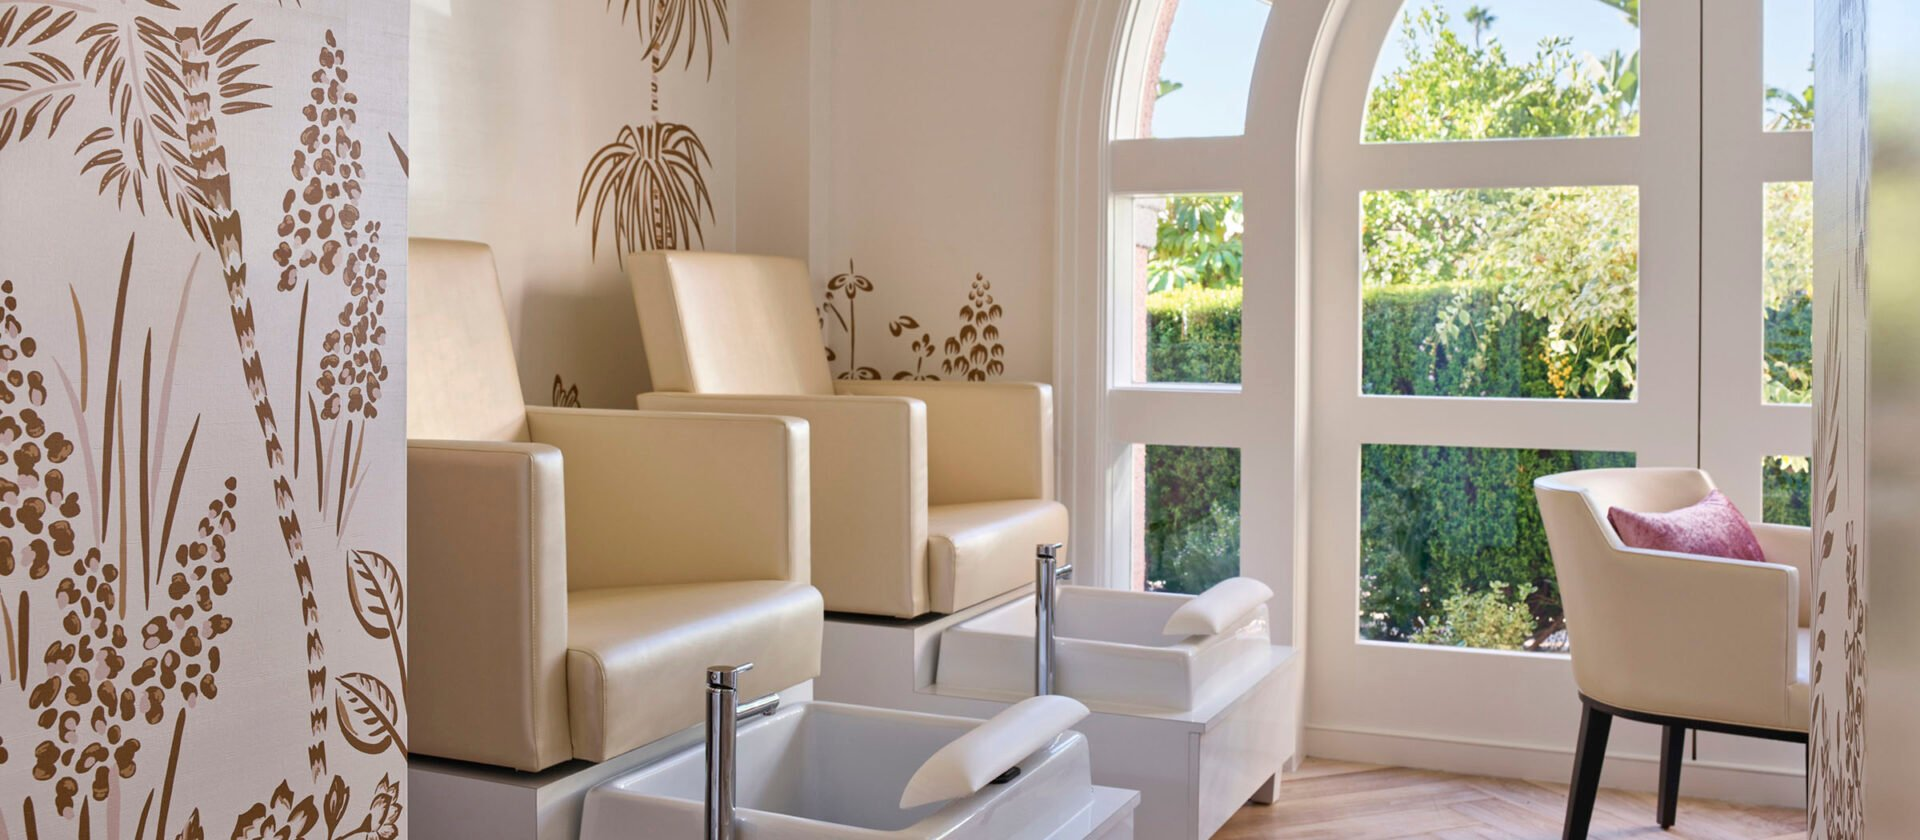 Nail Suite with two plush chairs and arched window